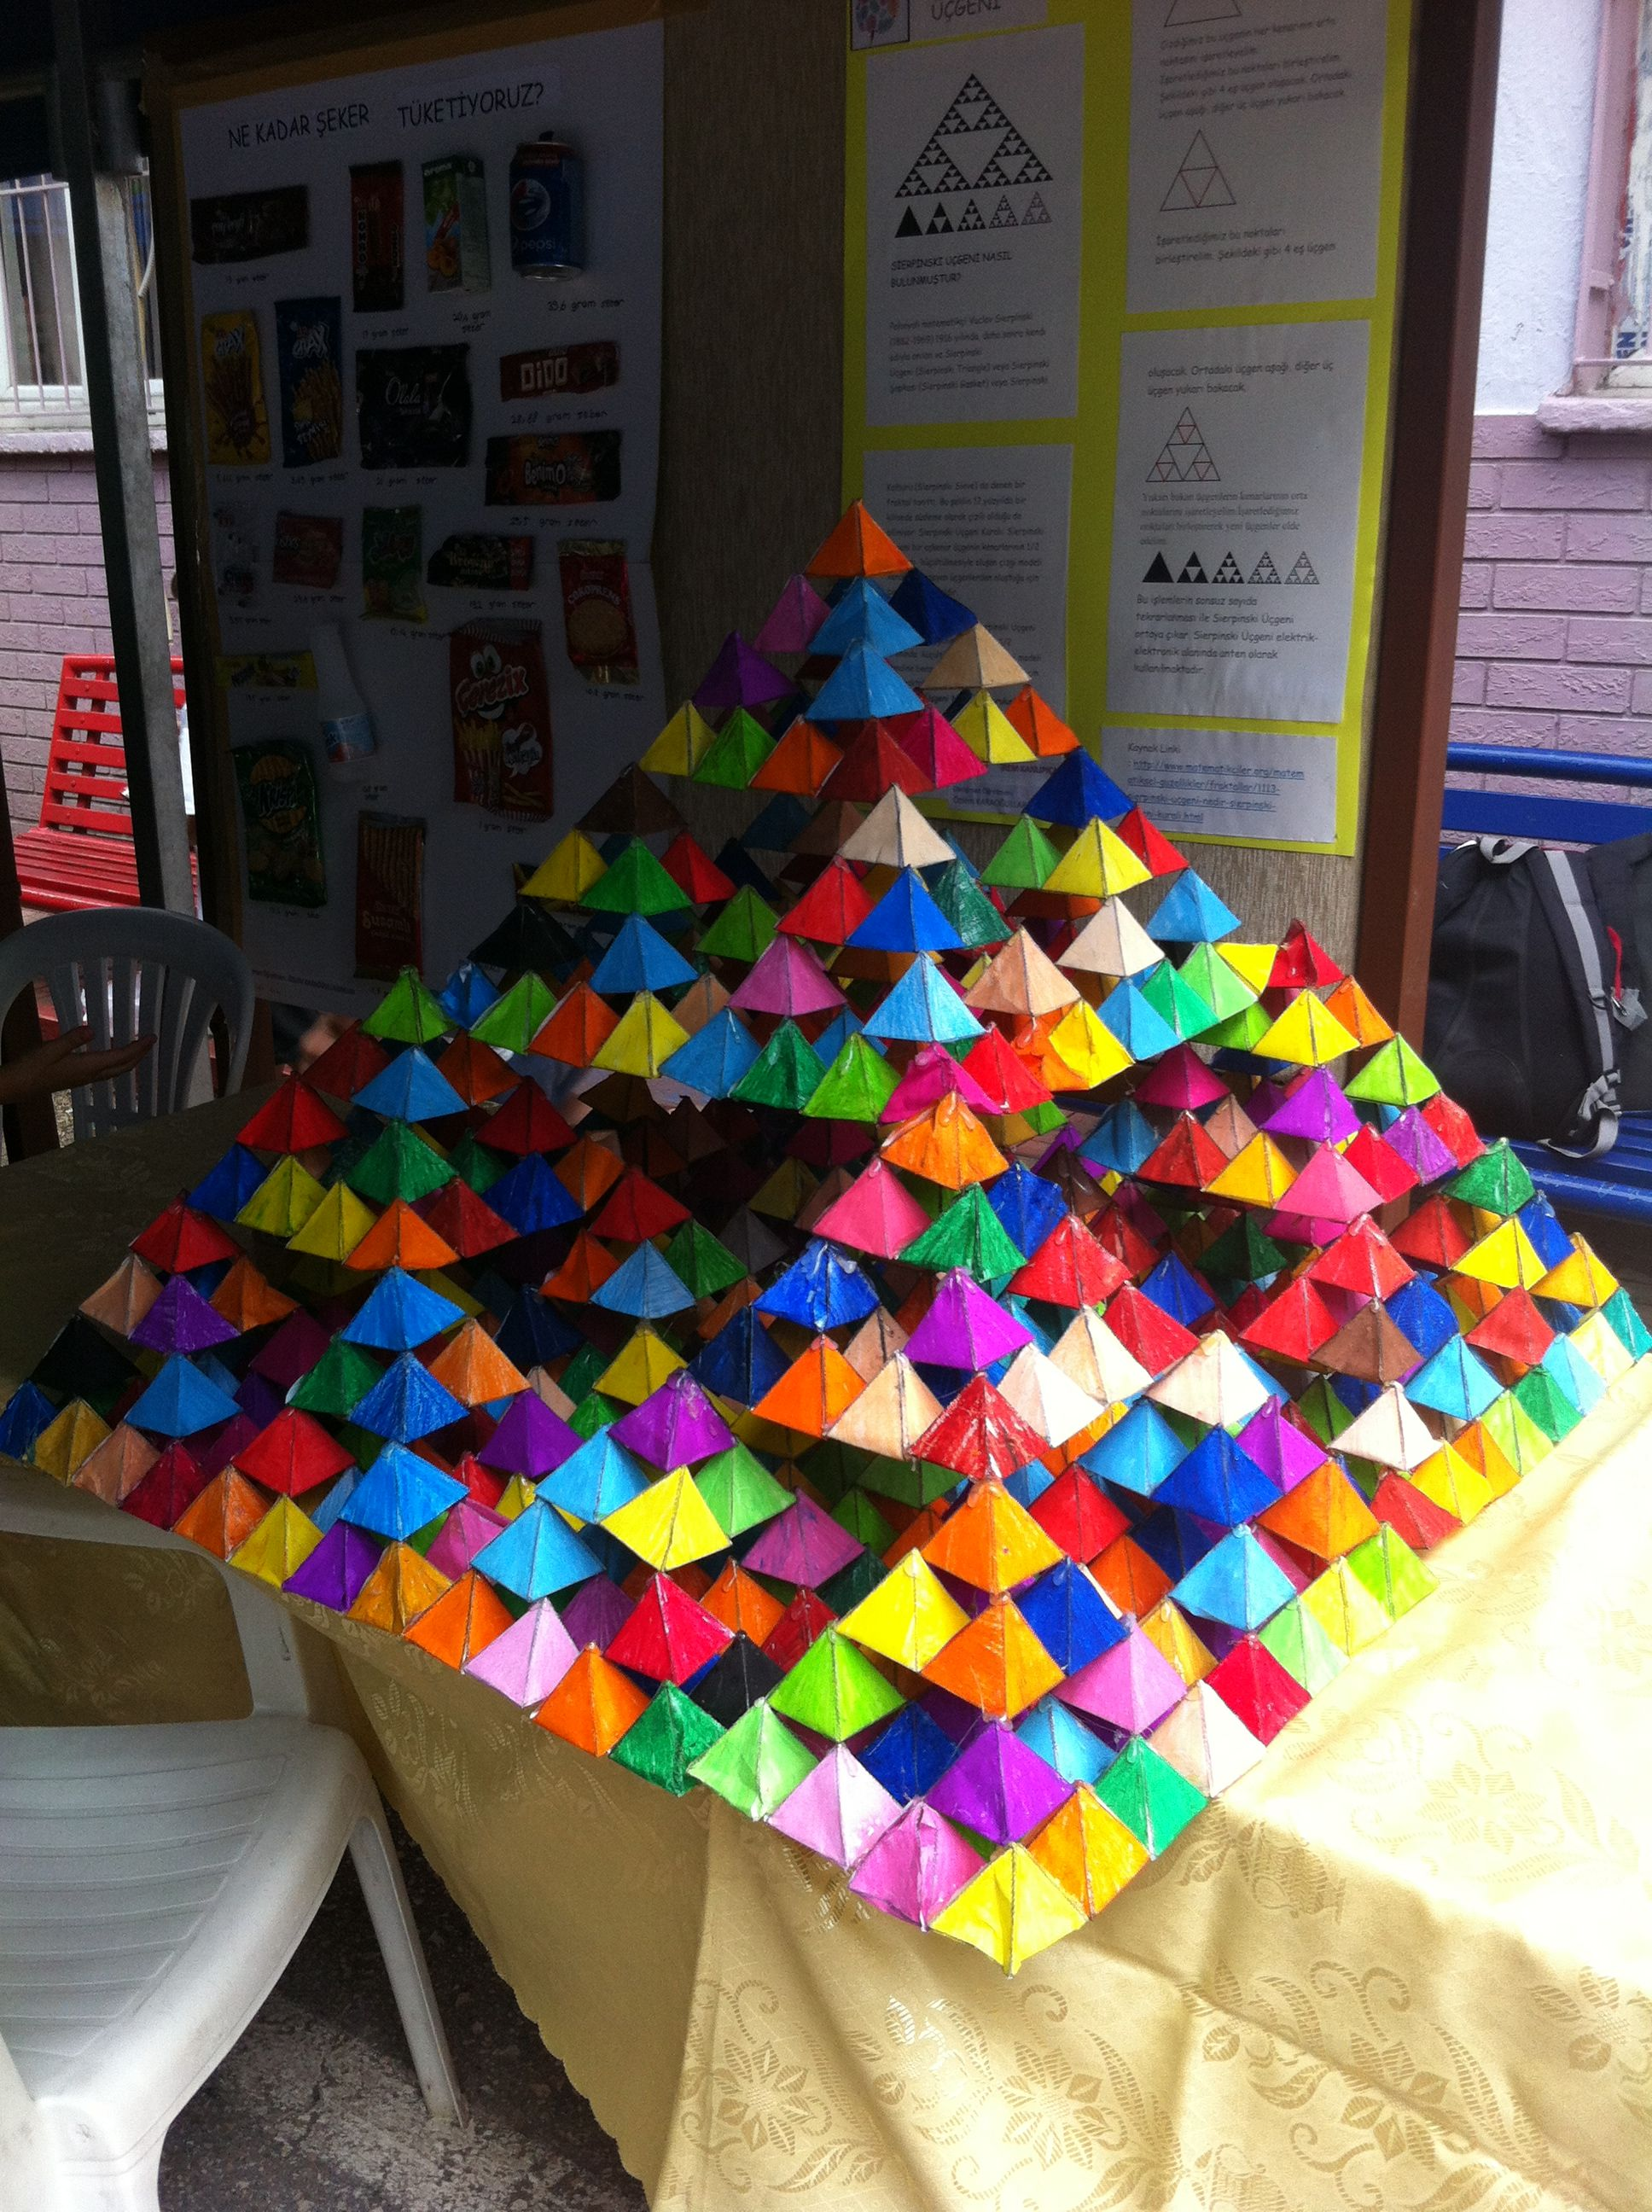 Sierpinski Pyramid | Math for kids | Math art, Math ... - photo#32